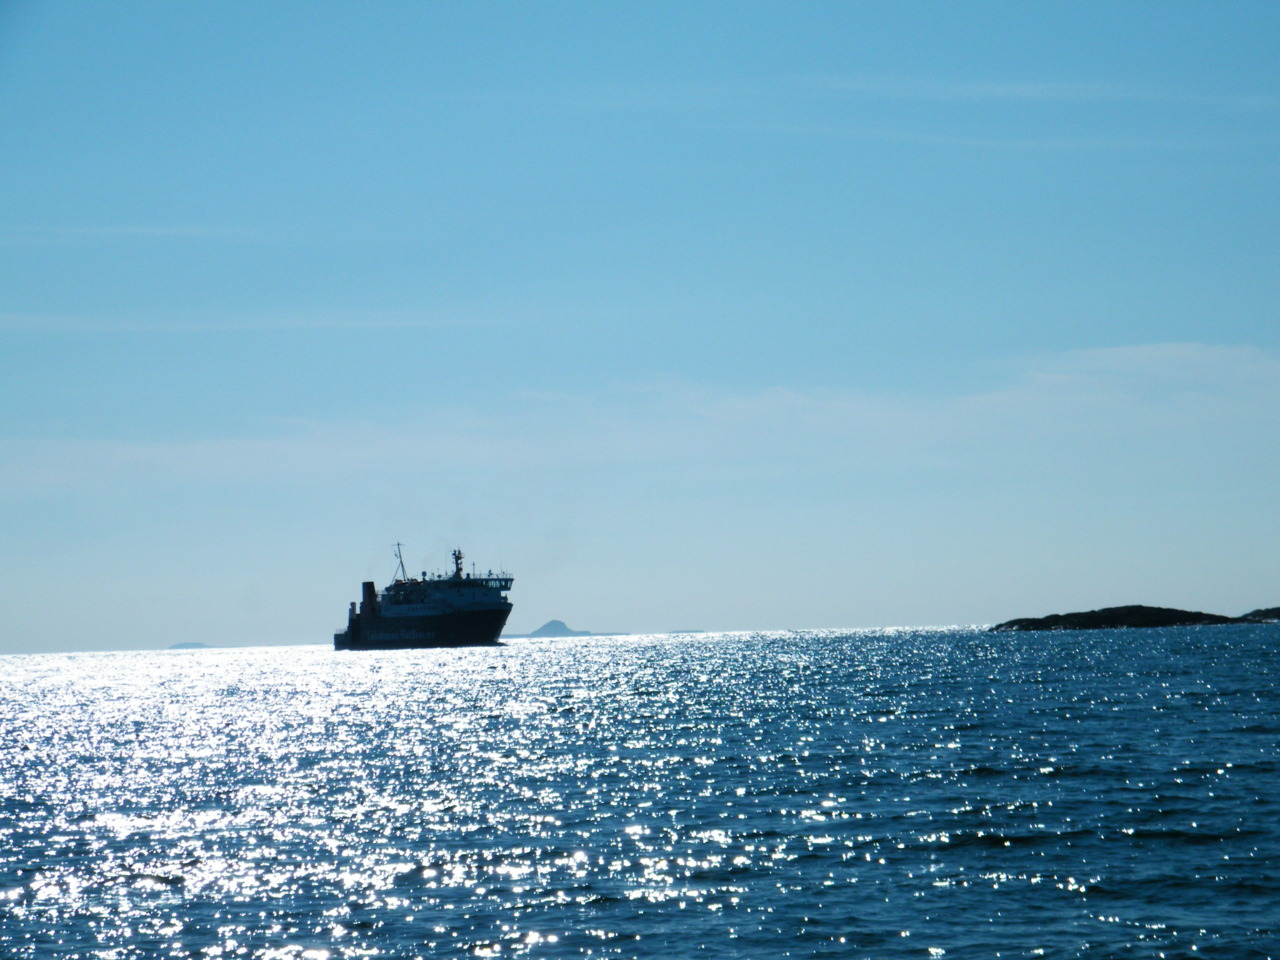 The Lord of the Isles arriving at Coll